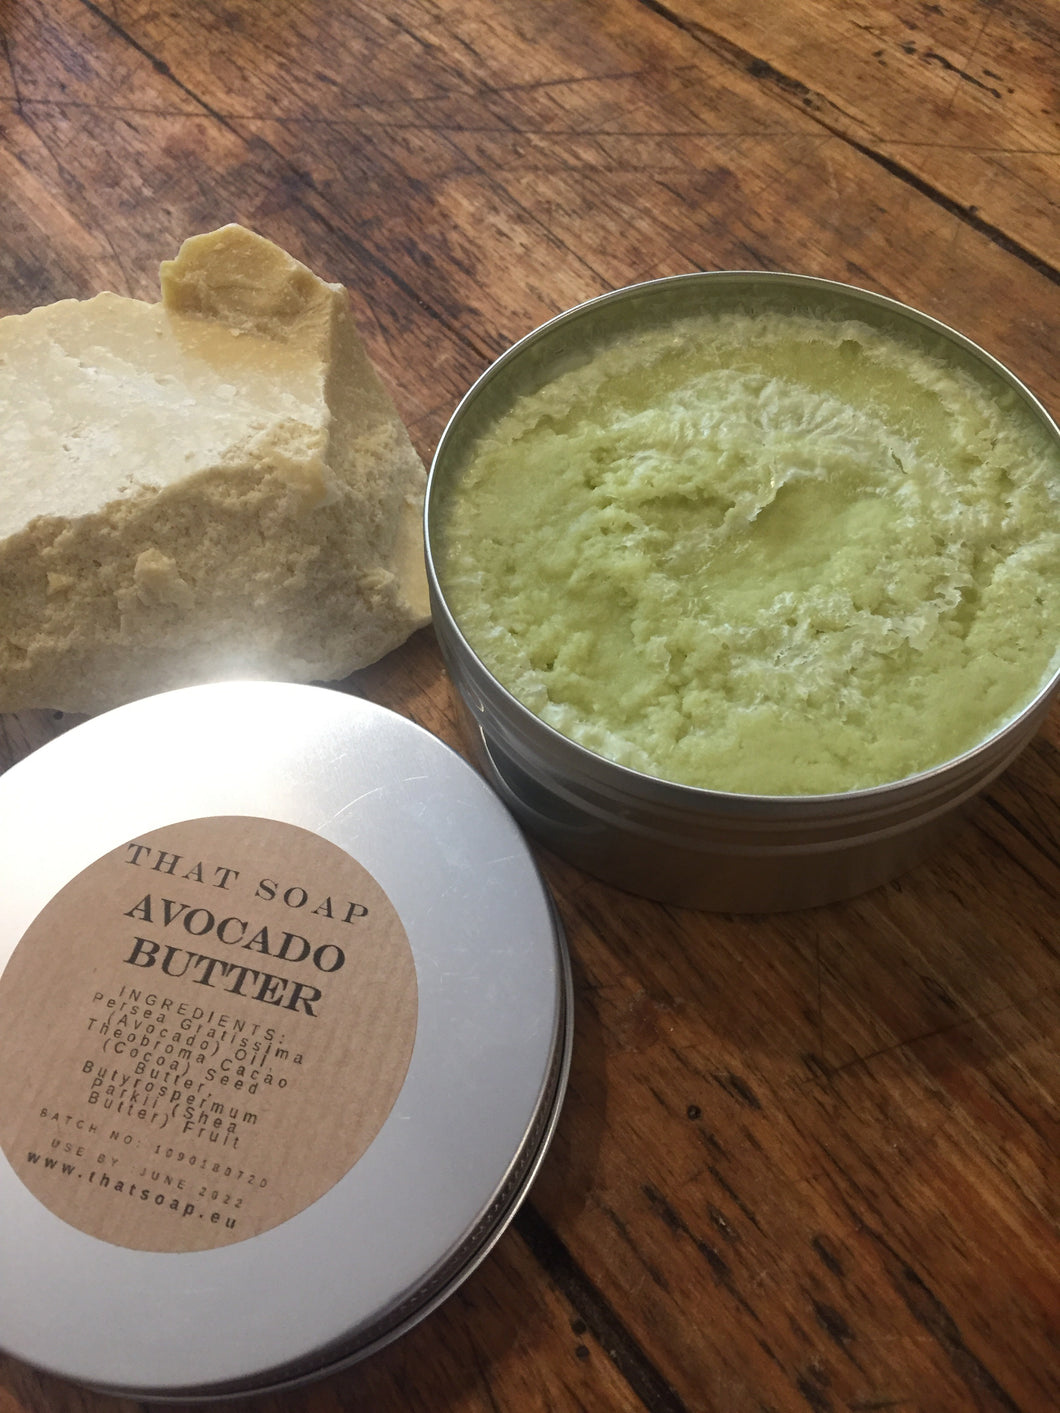 Avocado Butter - The Green Super Butter